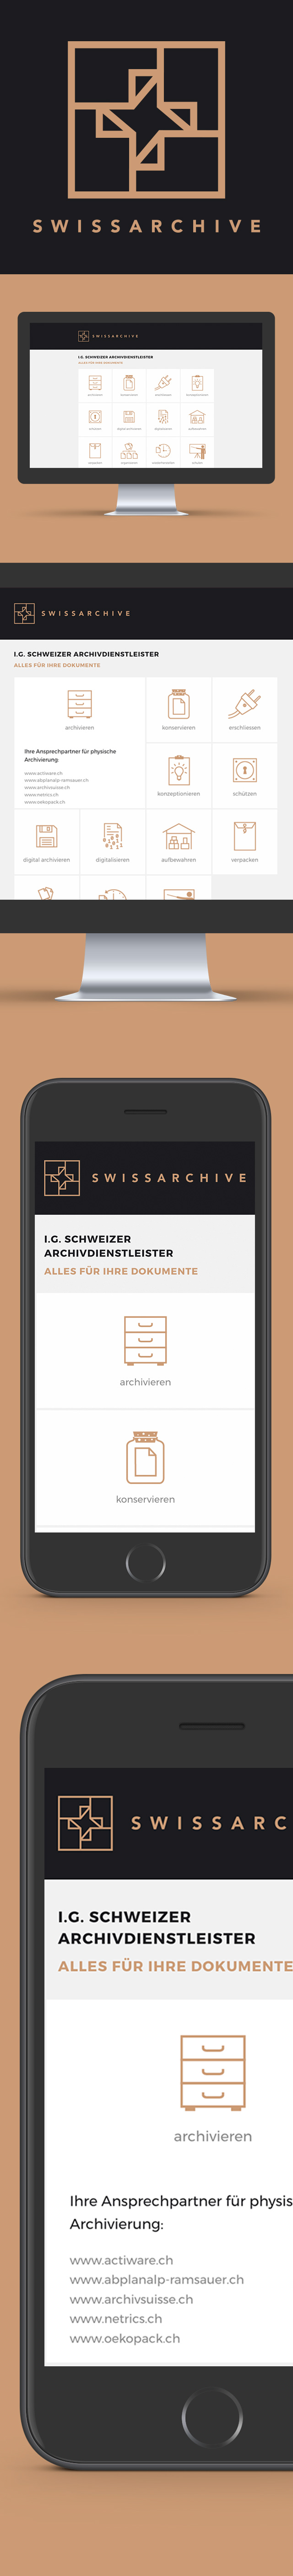 GLUNZ Projekt: Swissachive - Mobile version